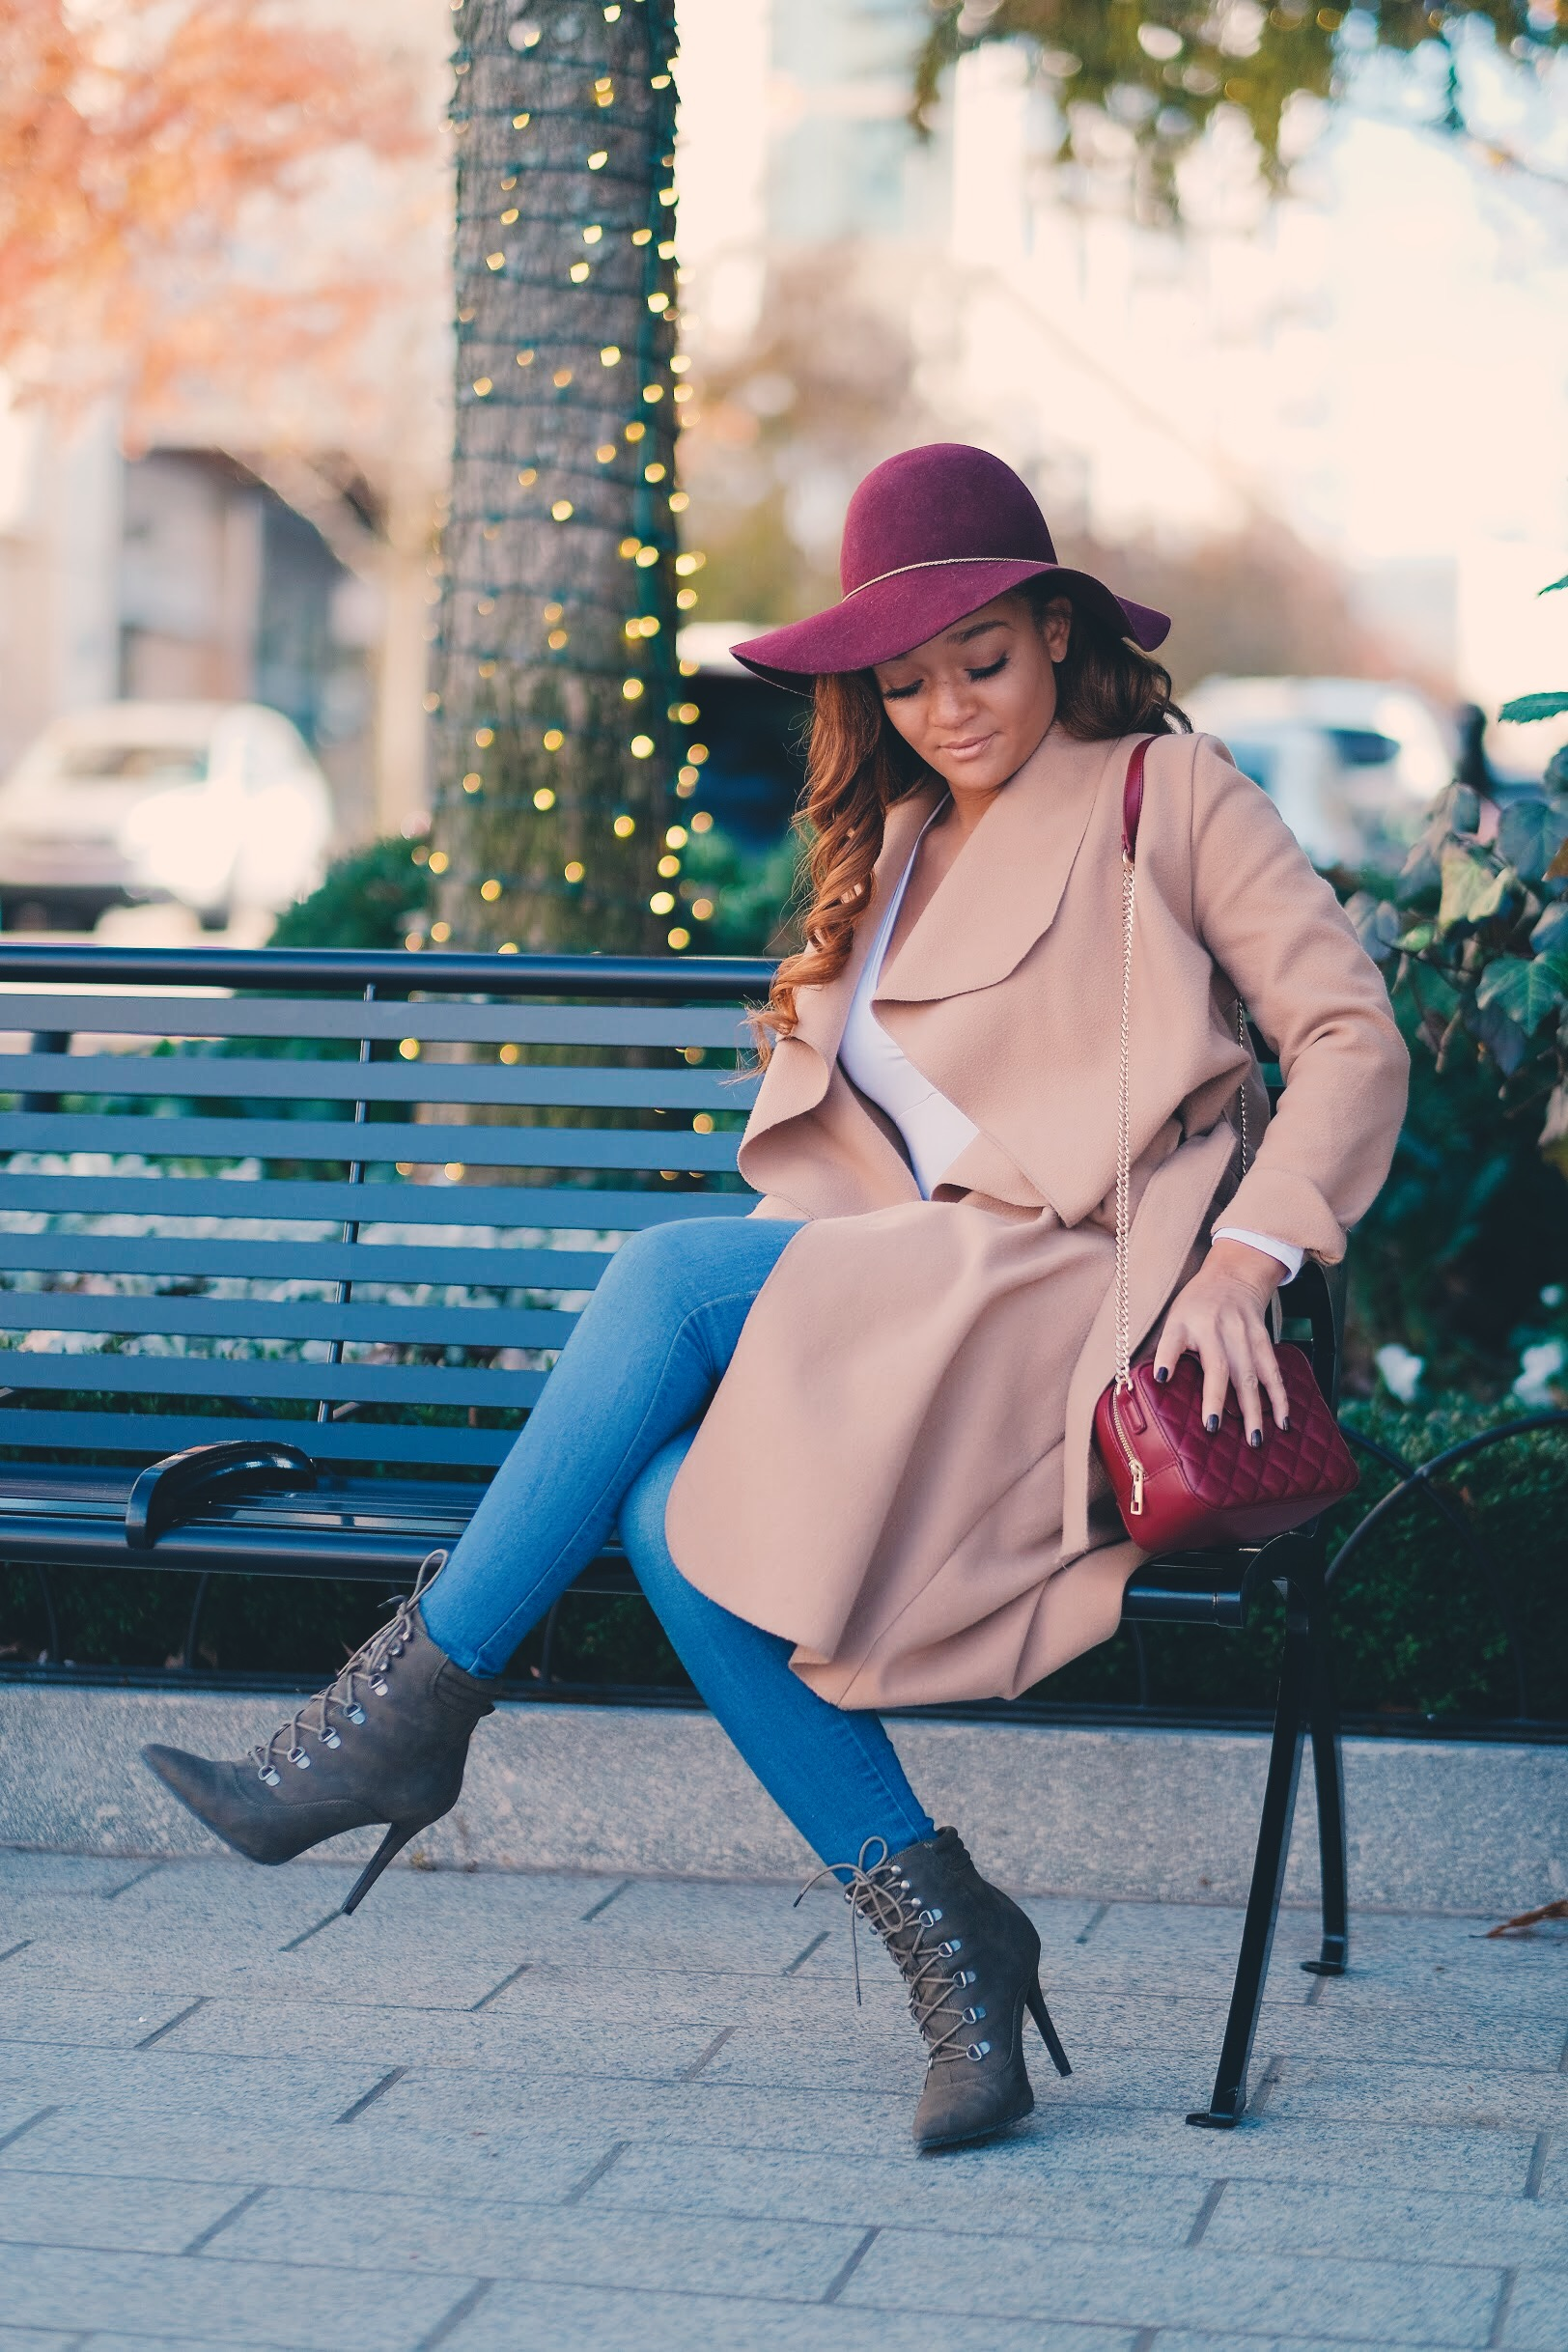 10 Items Every Girl Boss Needs for the New Year